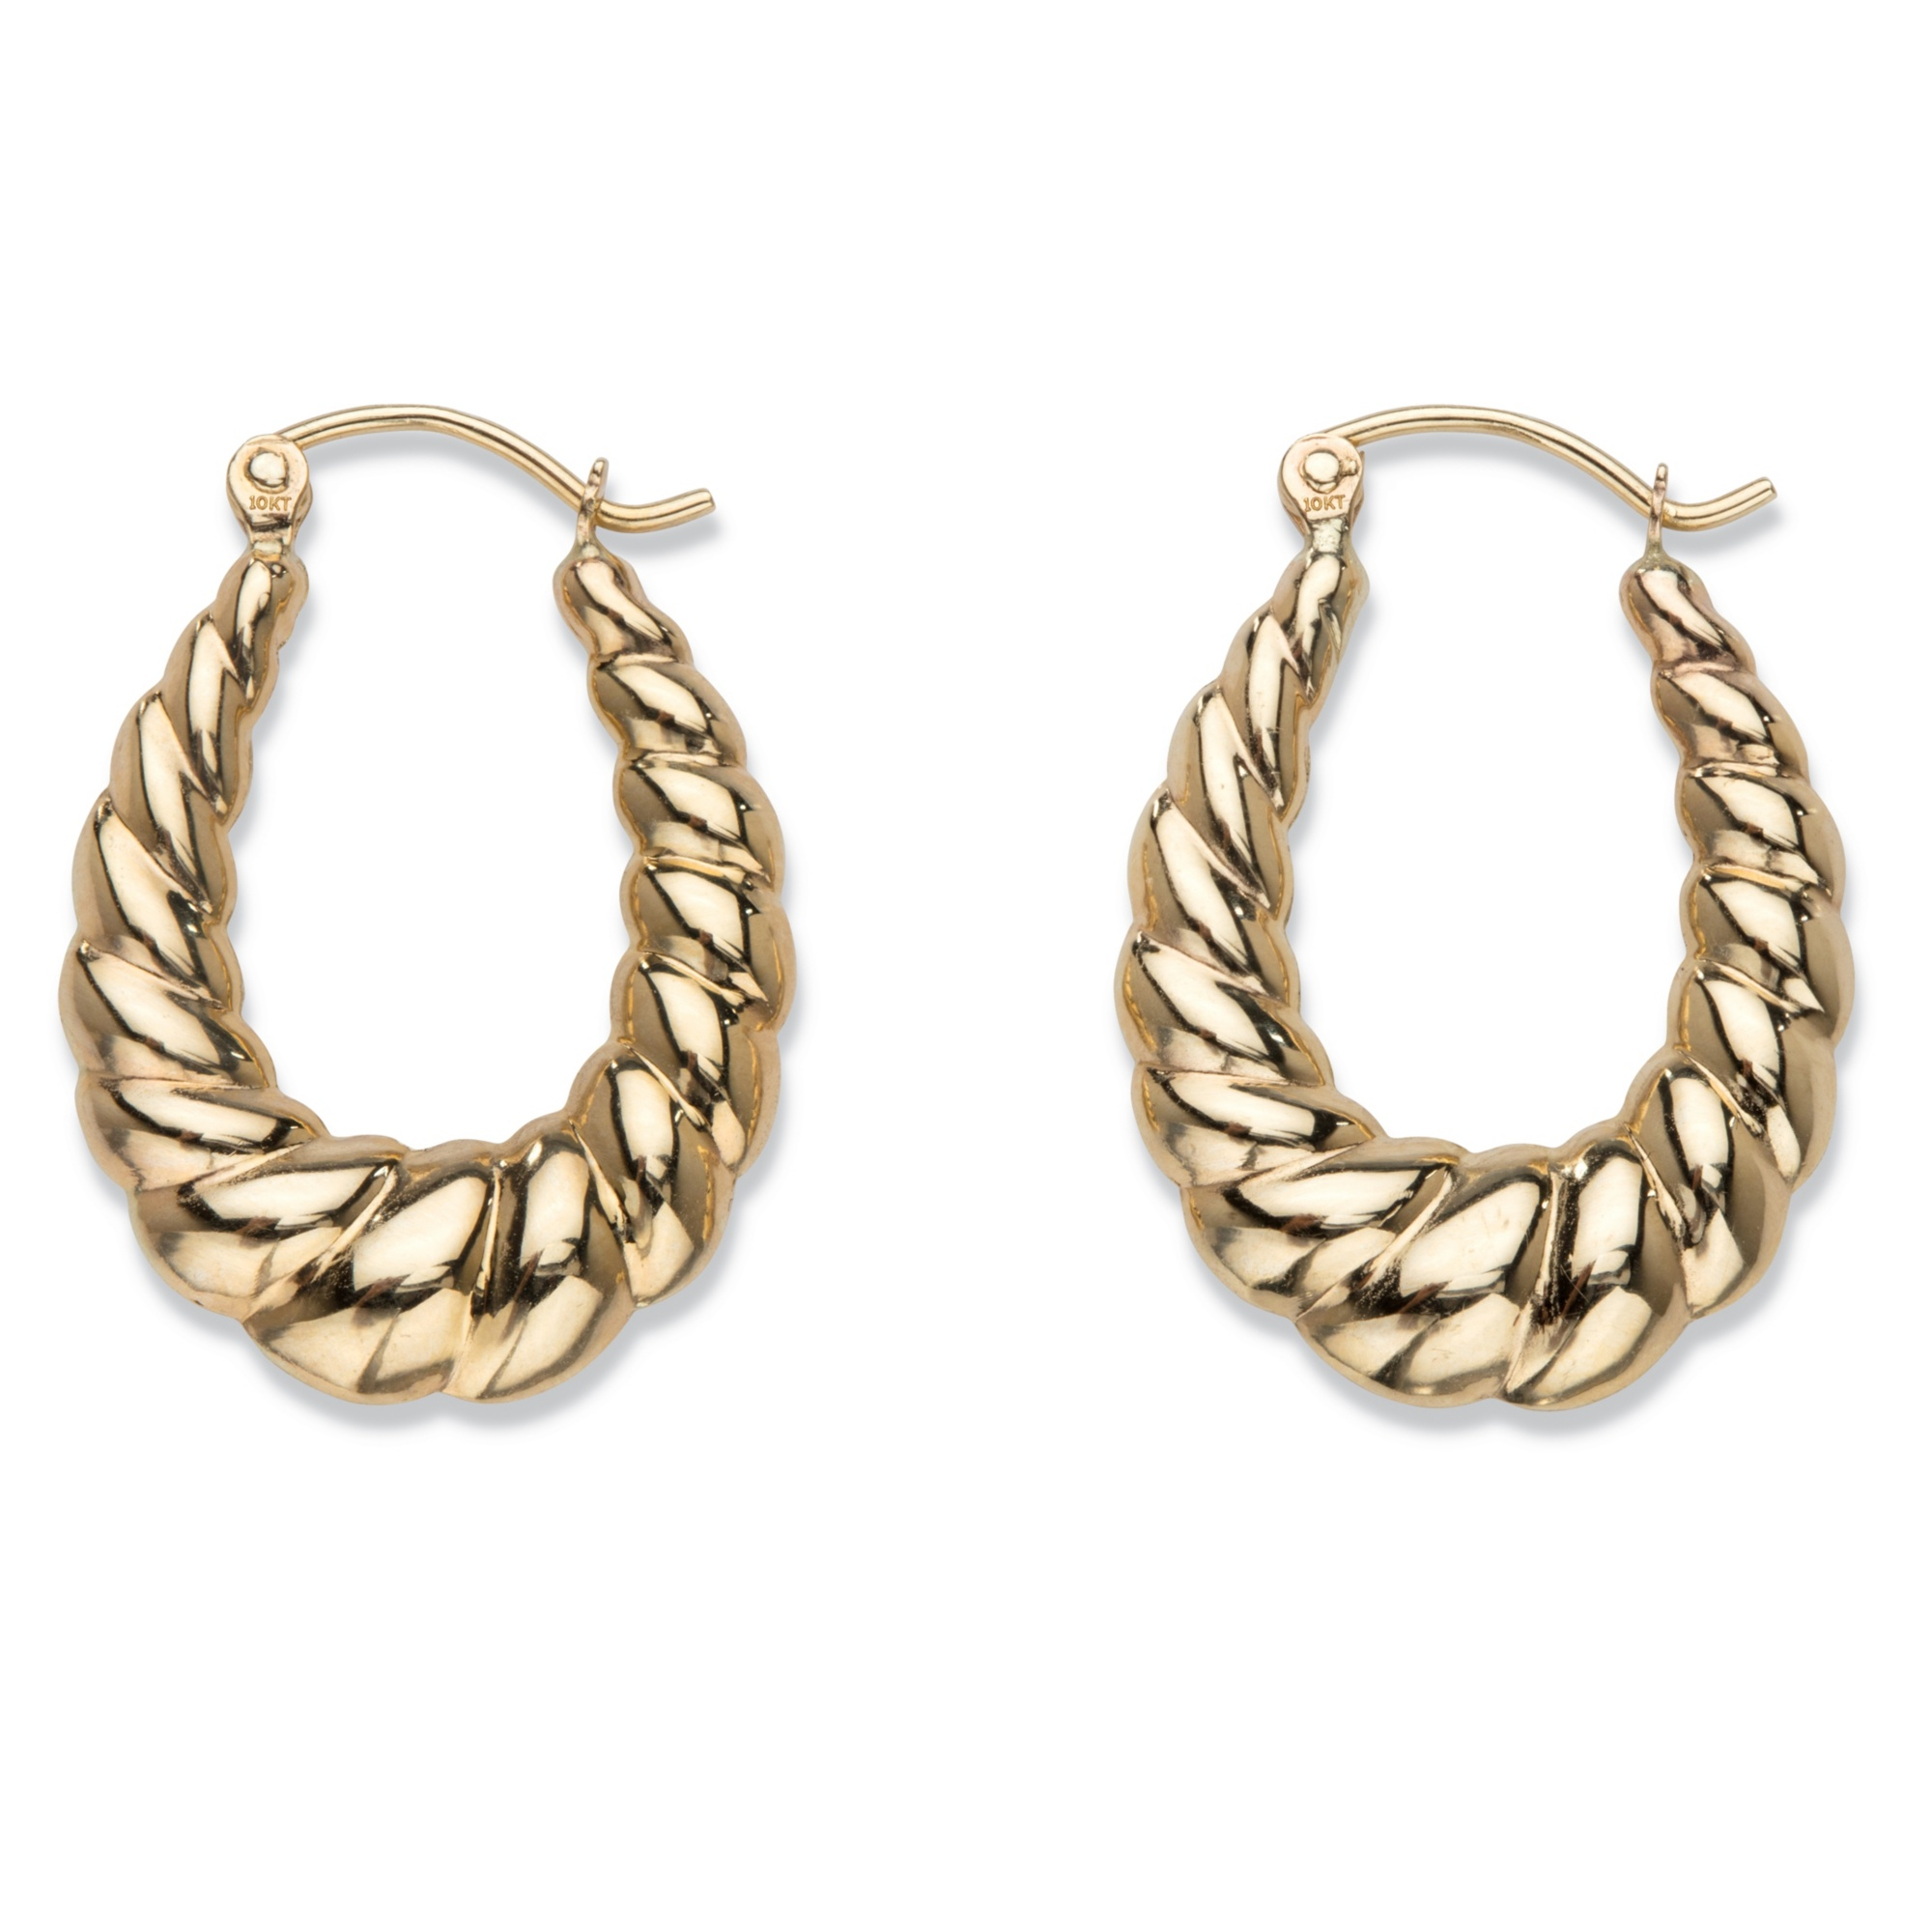 f08f0aab06bac Shrimp-Style Puffy Hoop Earrings in 10k Yellow Gold 1